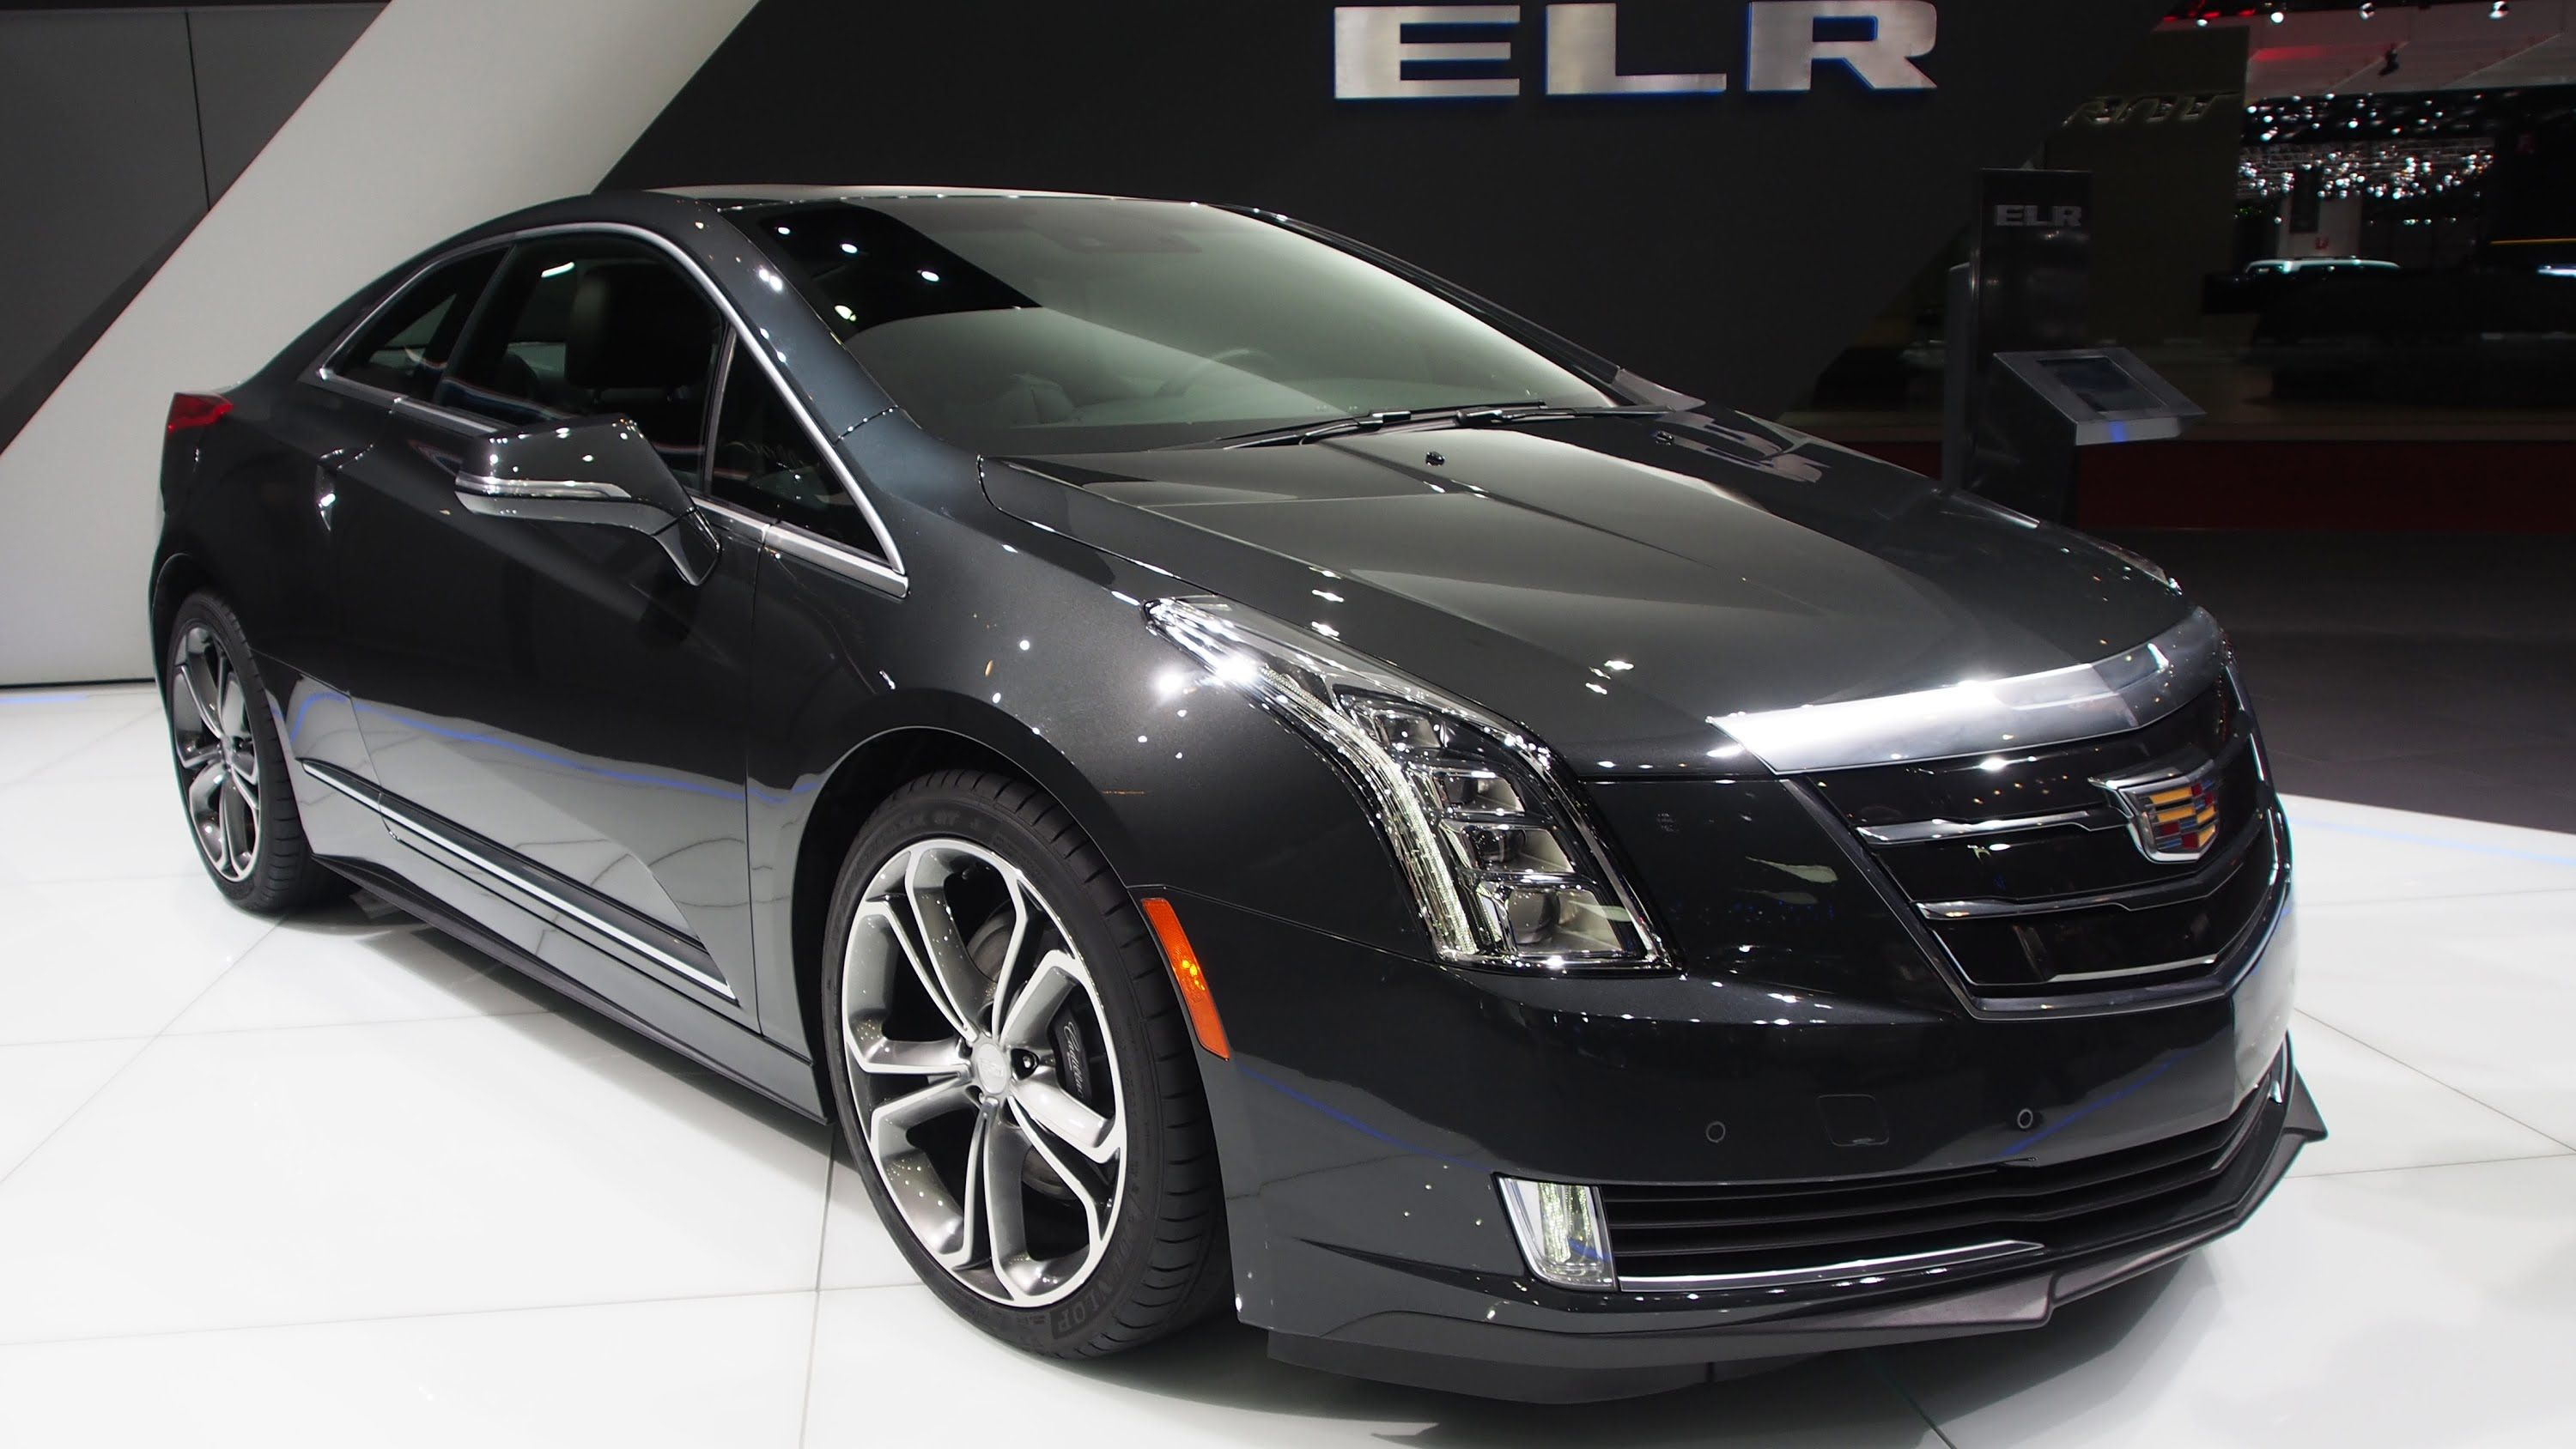 The New 2017 Cadillac Elr Price And Review Http Www Autocarkr